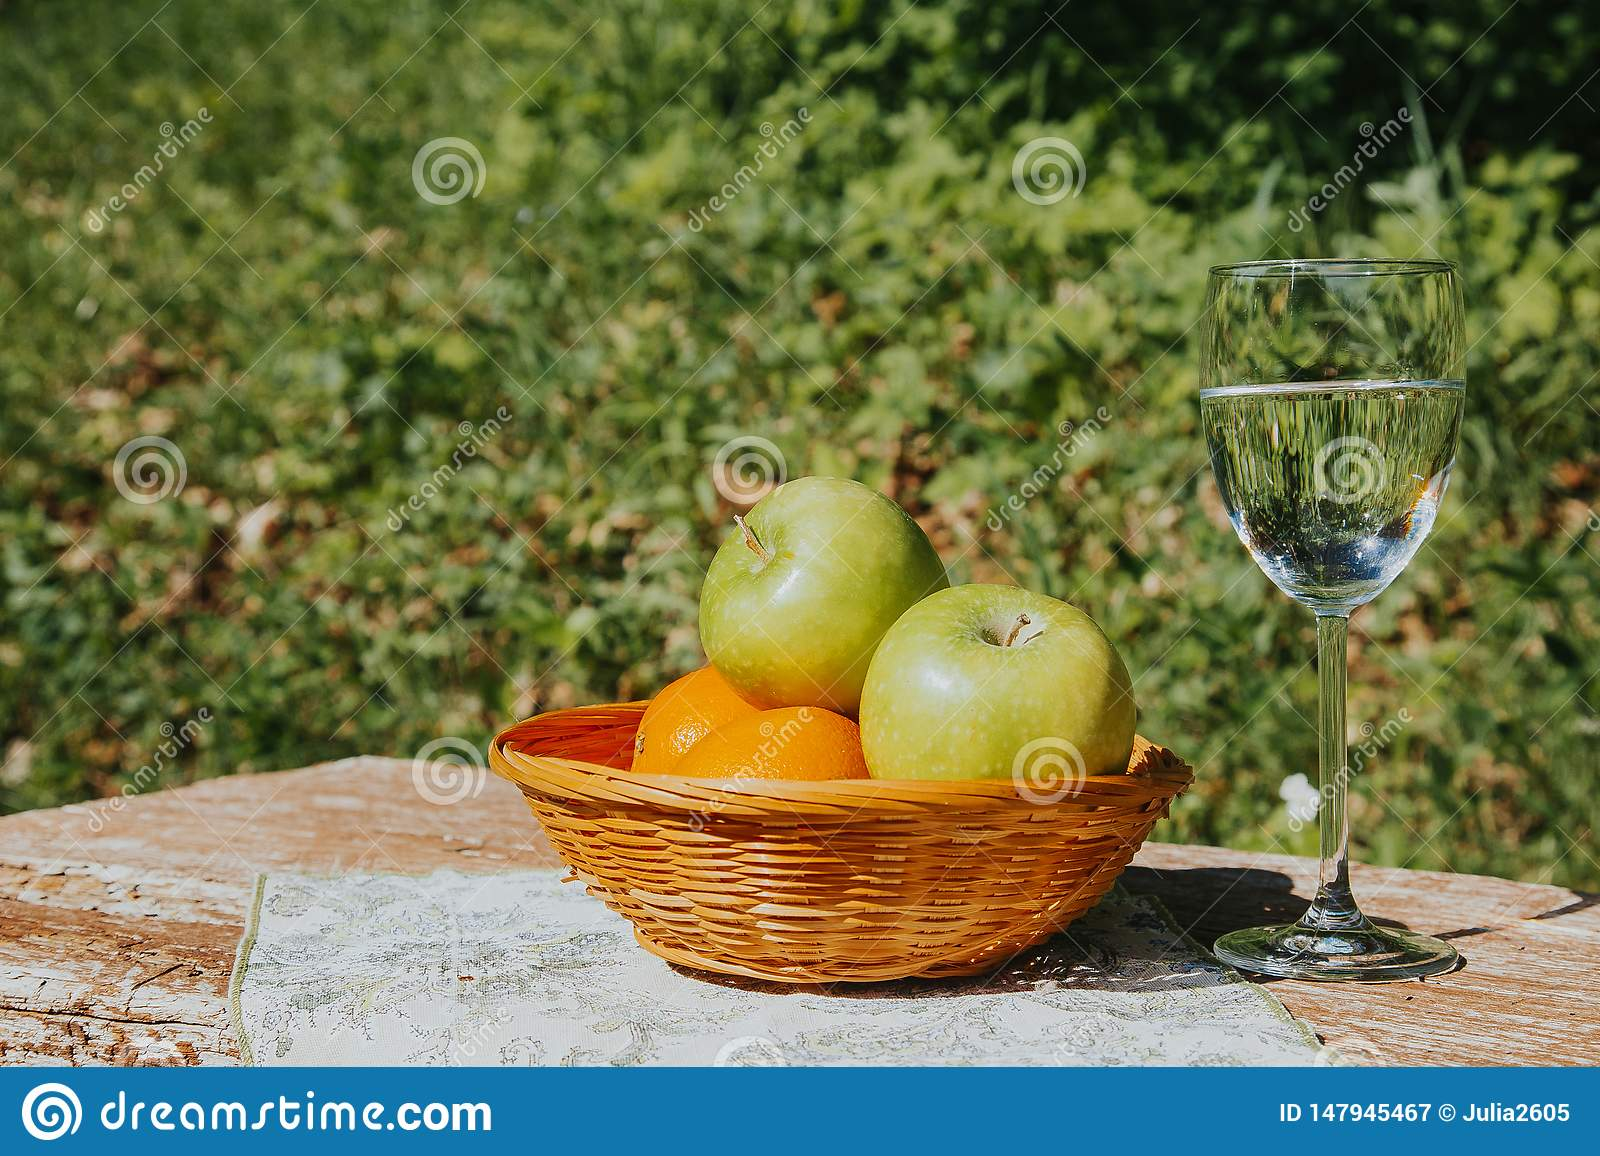 A glass of fresh Apple water and apples in a basket on a wooden table